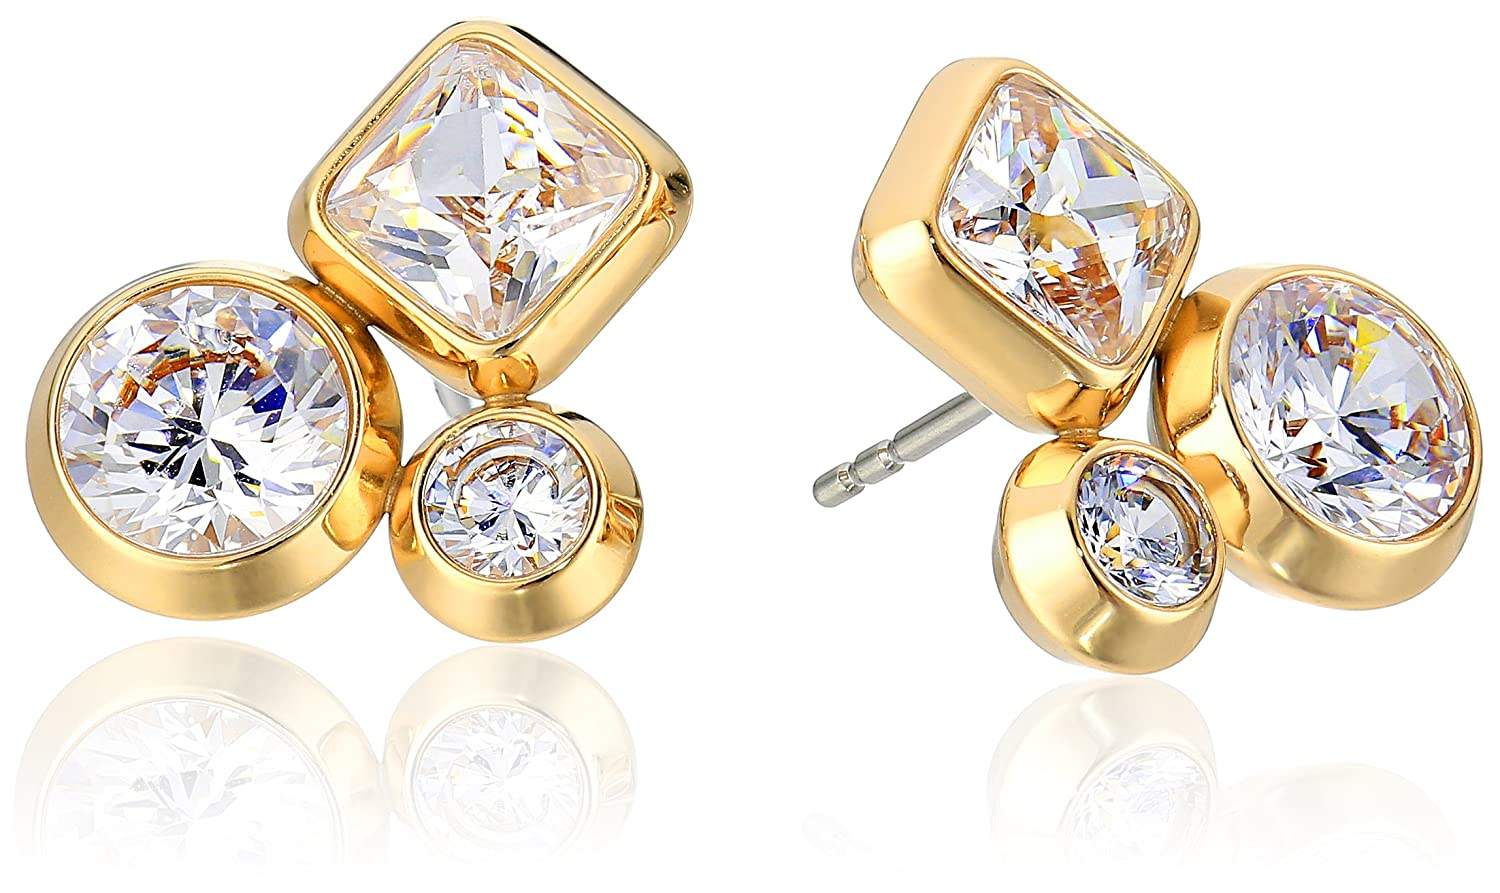 Michael Kors Brilliance Easy Opulence Gold-Tone and Crystal Cluster Stud Earrings